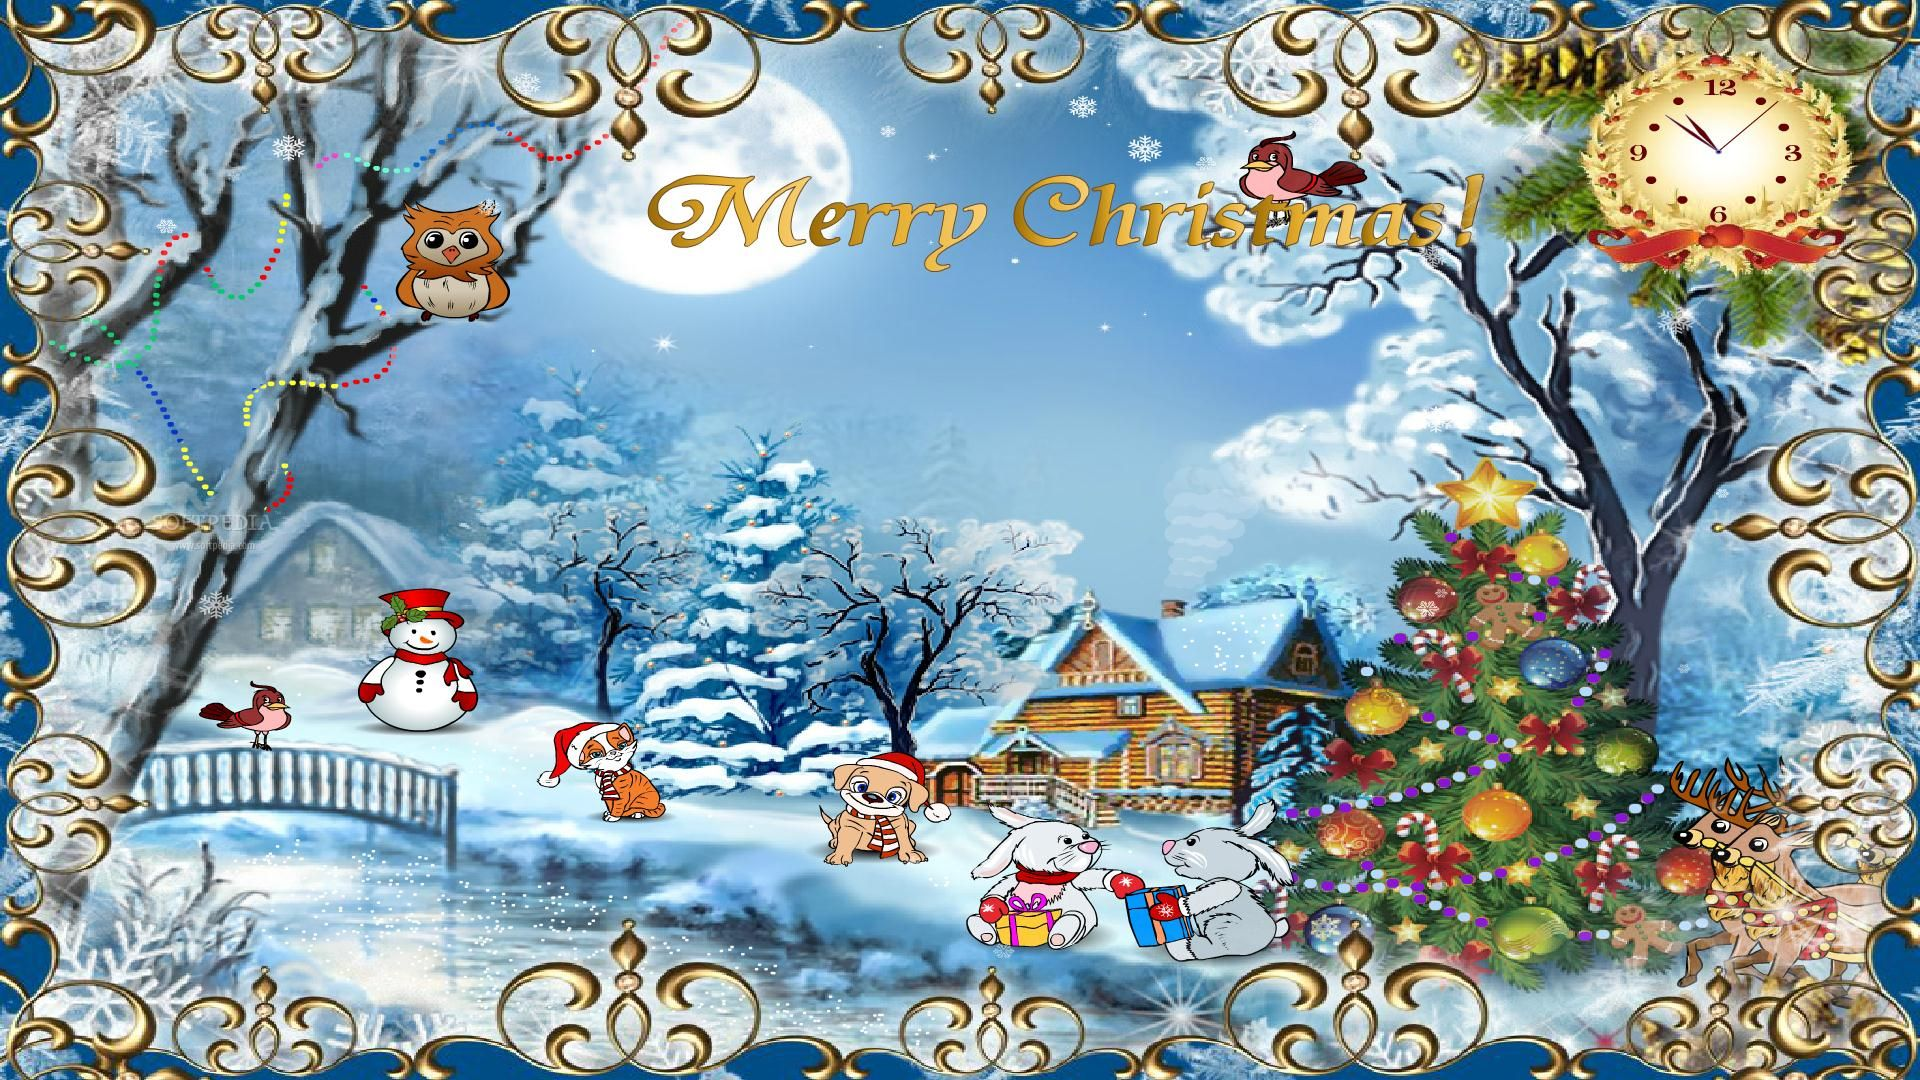 Christmas Cards 2020 Pinterest ✅ 9F18A11FC4 18+ of Christmas Card Images August 2020